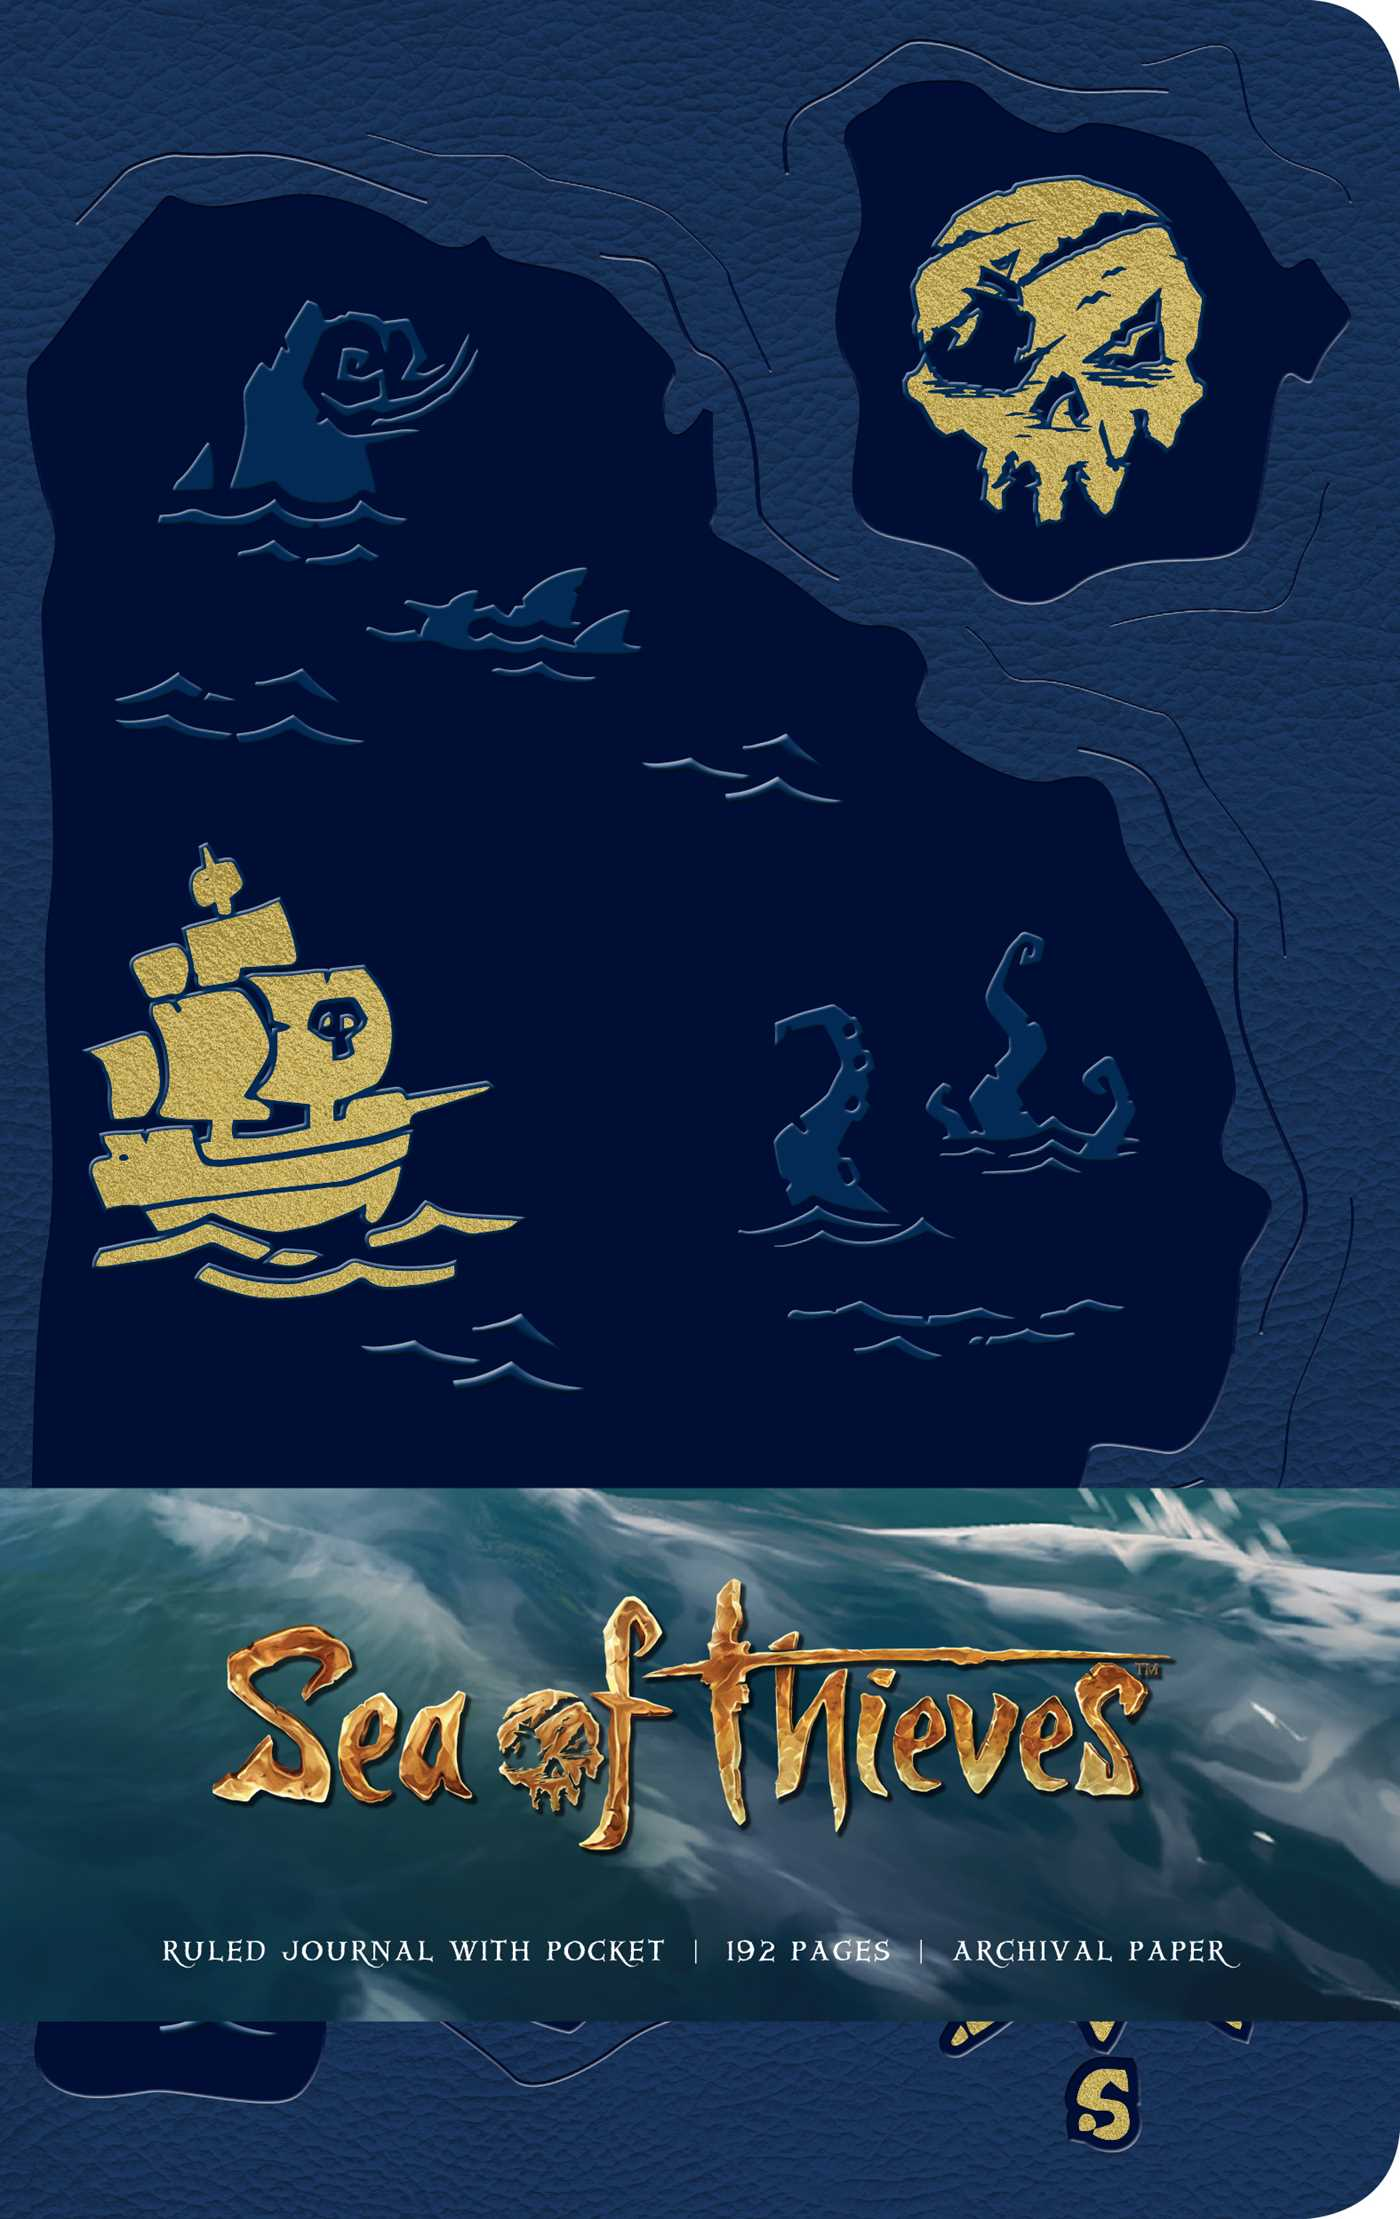 Sea of thieves hardcover ruled journal 9781683834885 hr